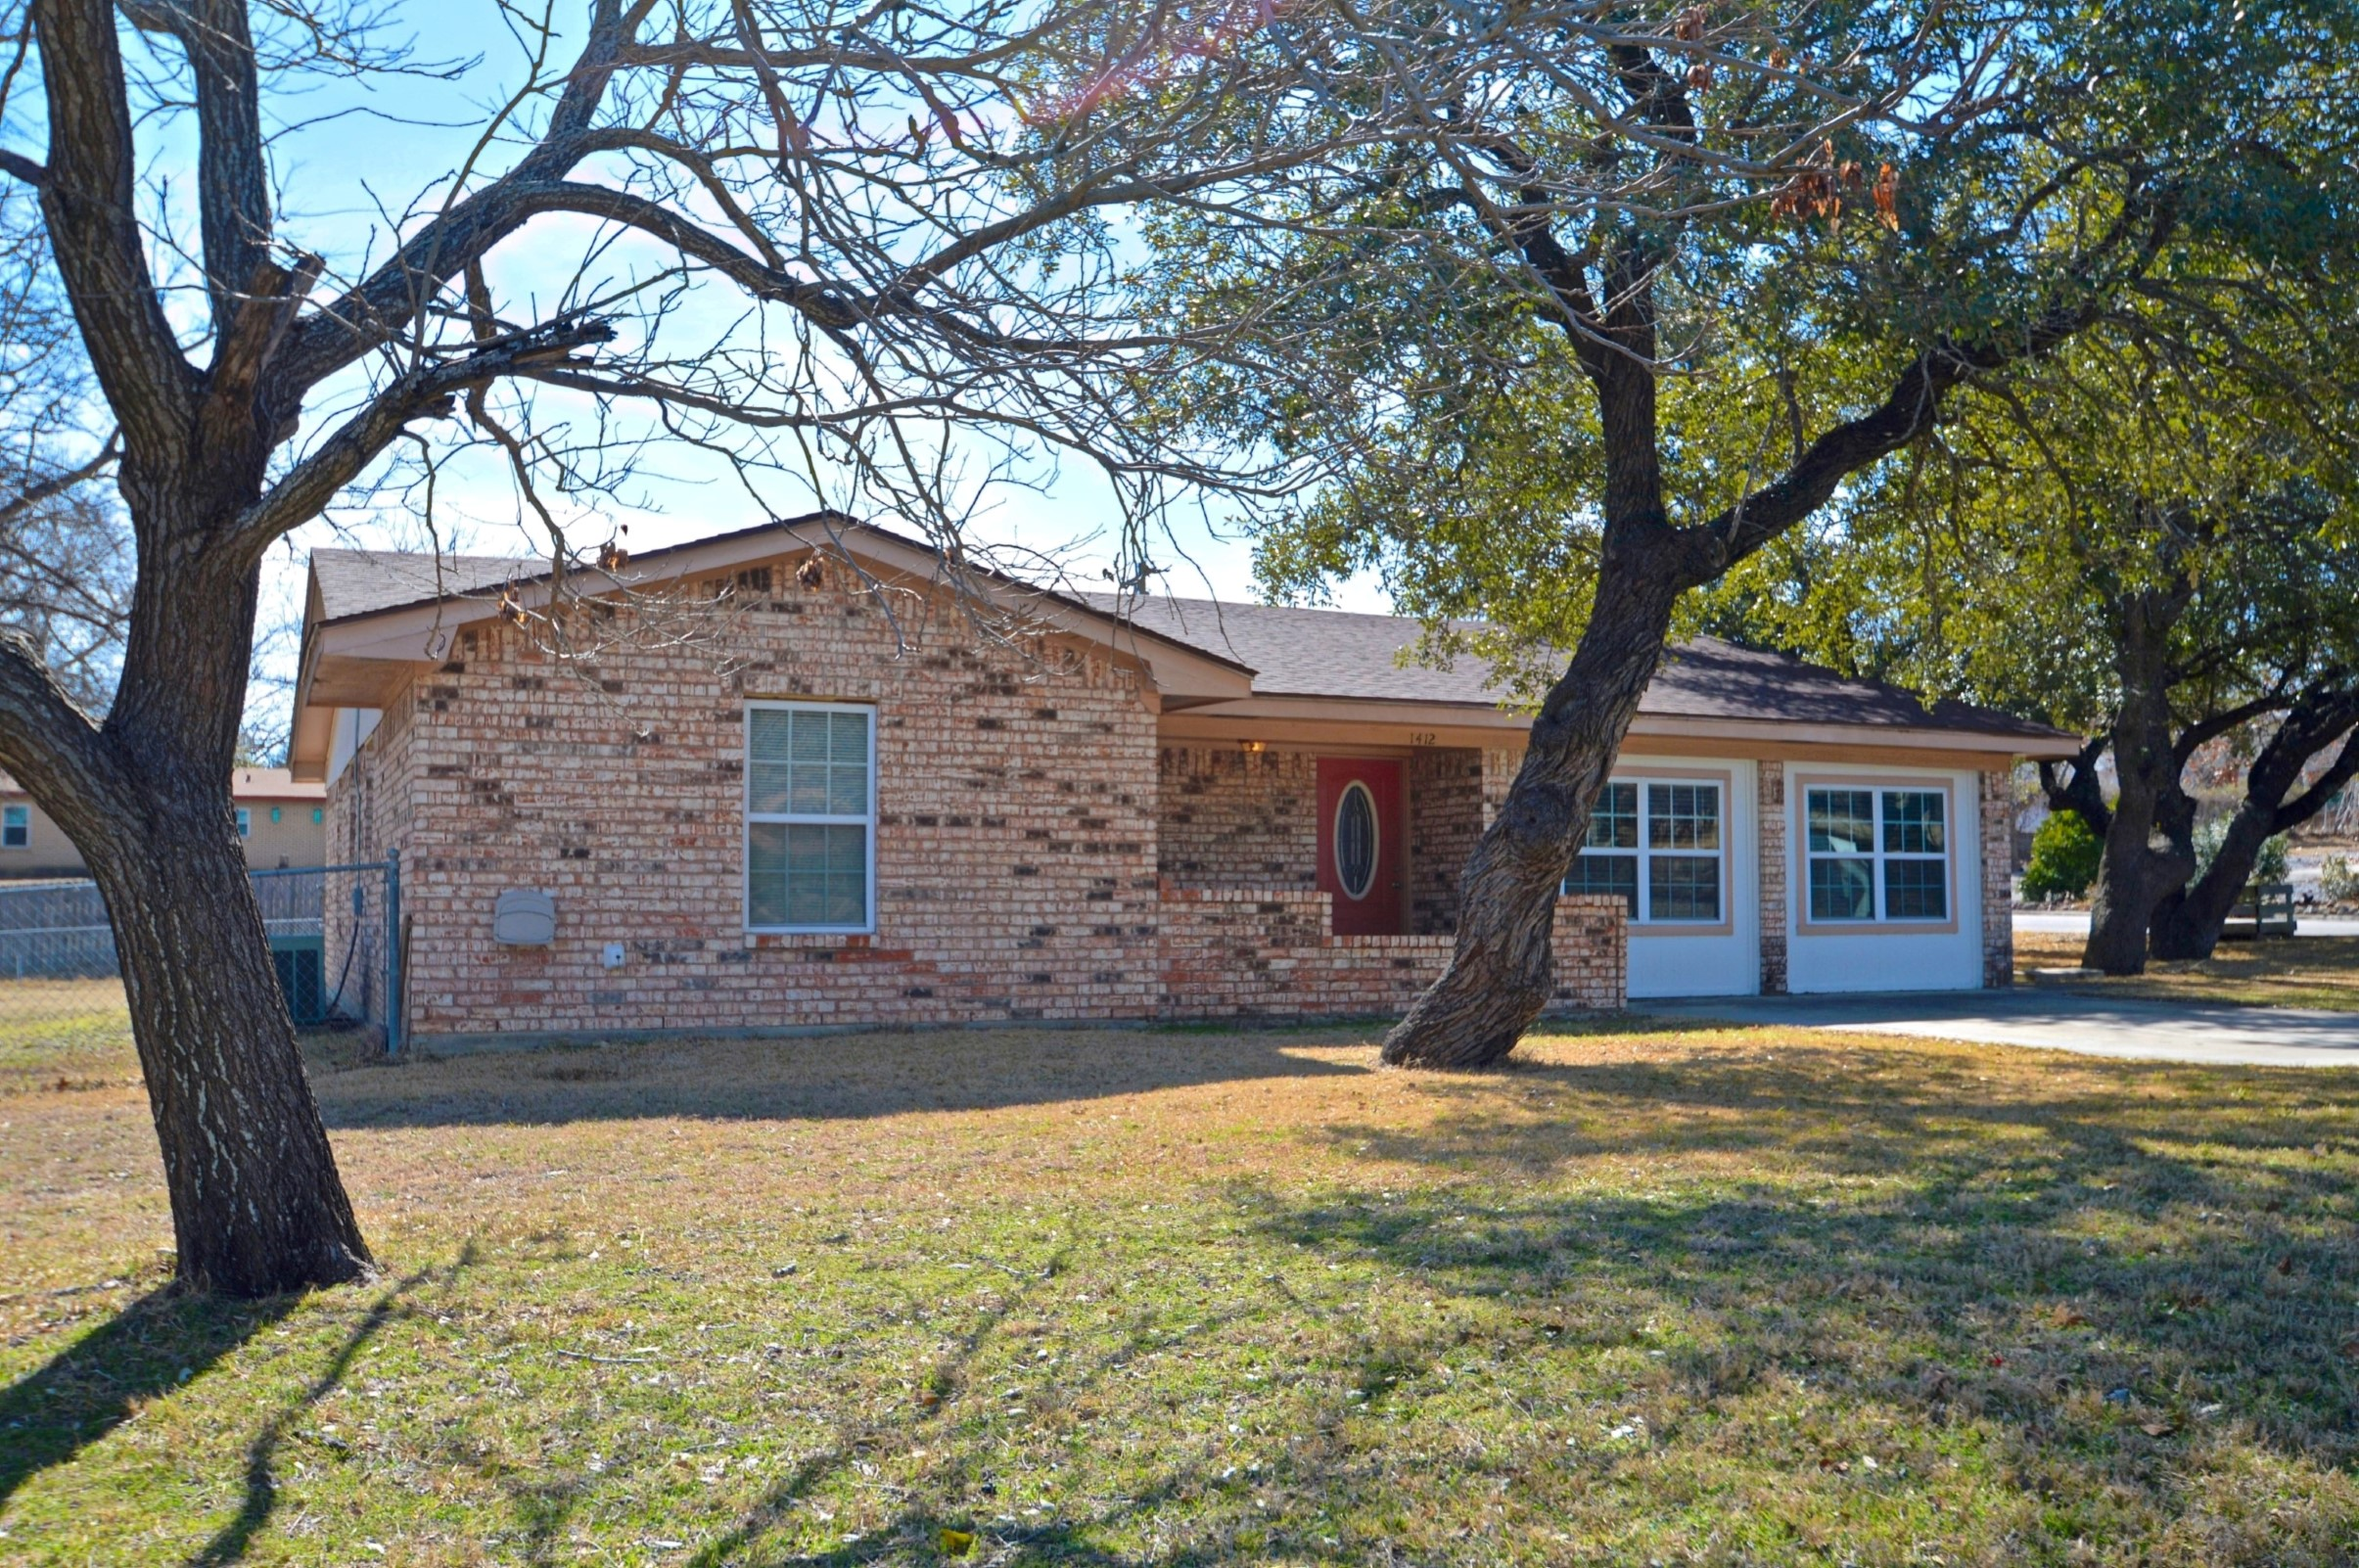 Home for sale: 1412 West Ave C, Lampasas, Tx